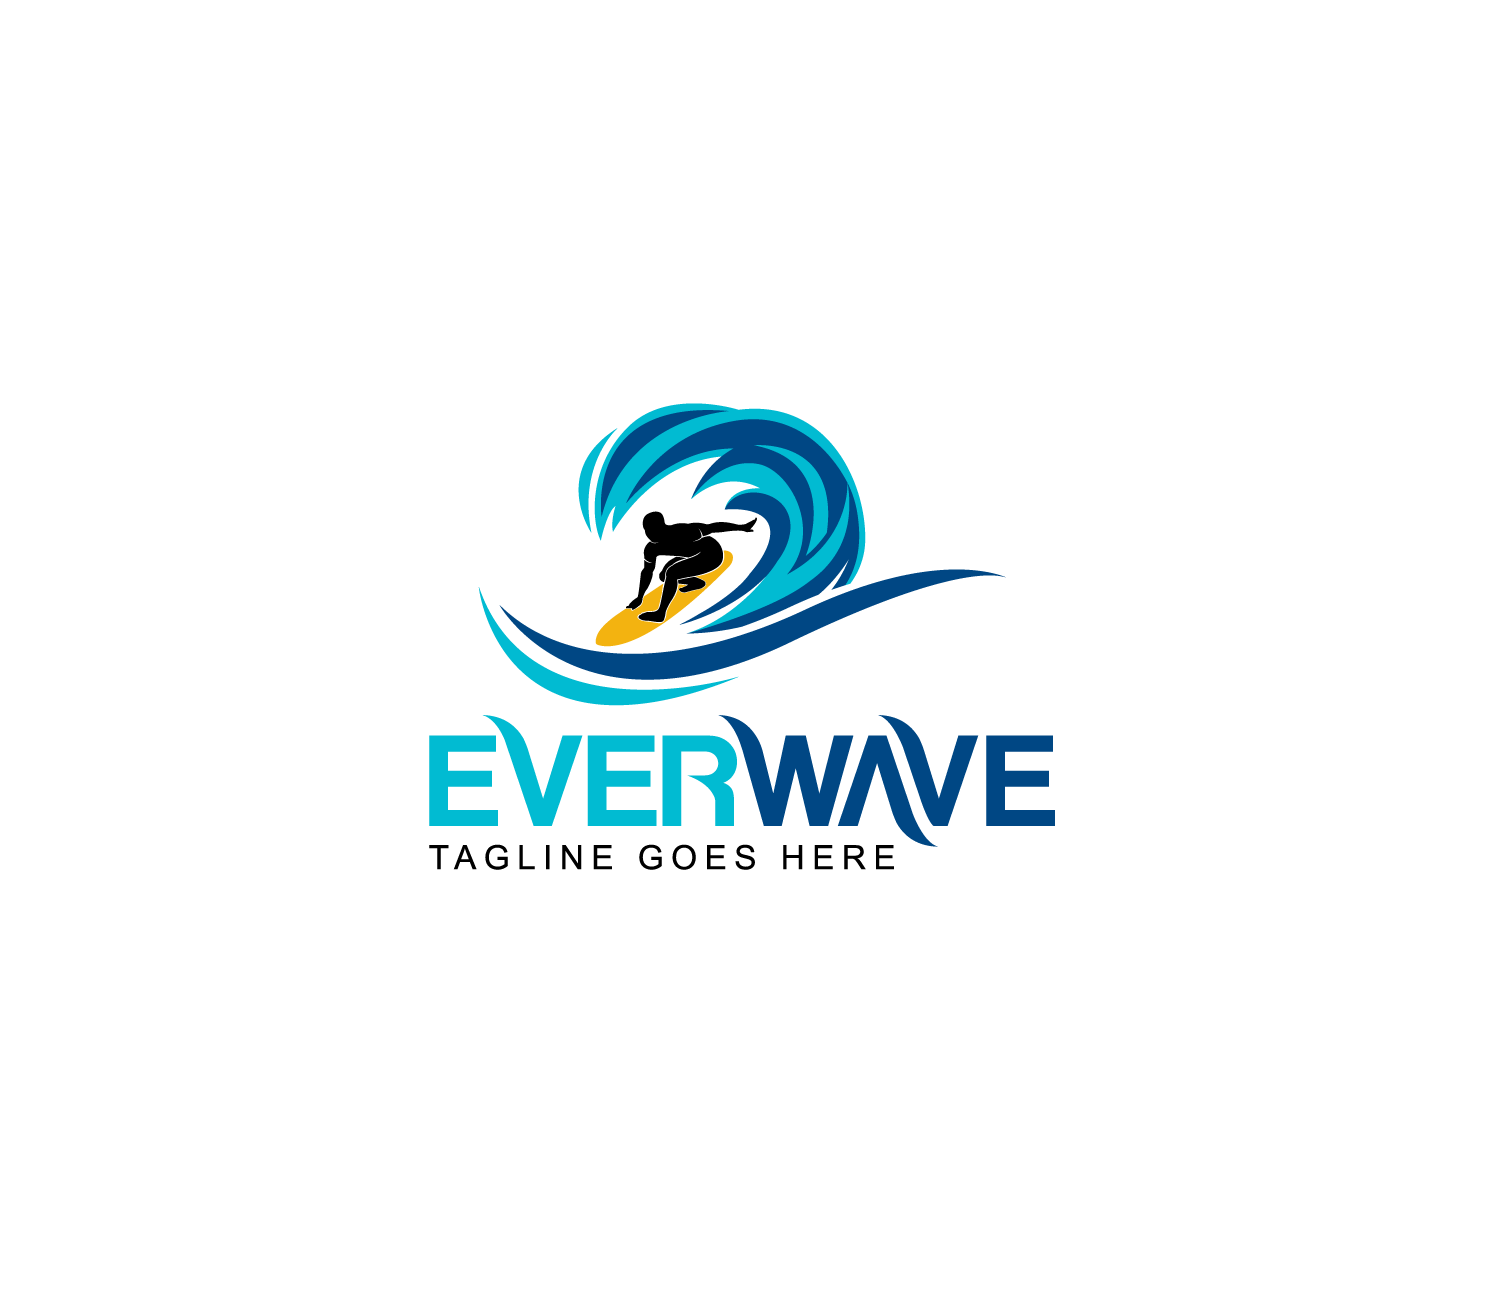 Help us with a logo design for EverWave and WIN!